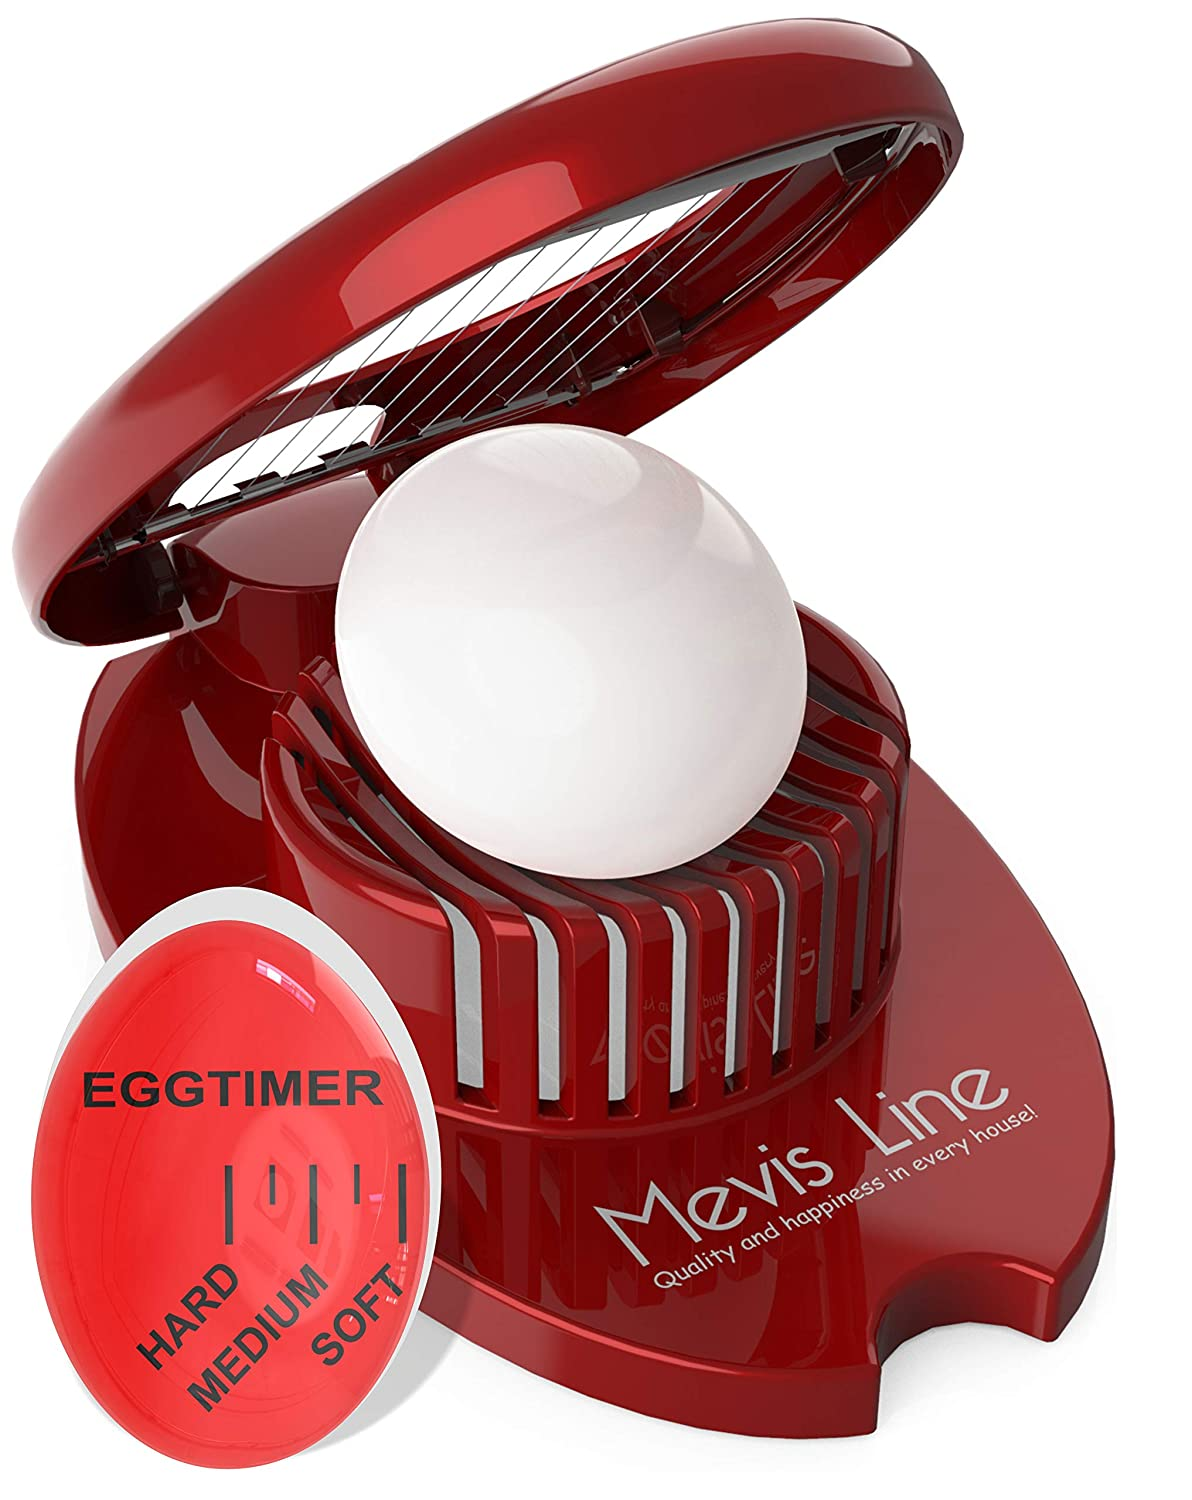 Hard Boiled Egg Slicer with Perfect Boilled Egg Timer, Also Used For Strawberries, Boiled Potatoes Or Mozzarella Balls, Egg Dicer with Egg Timer That Changes Color When Done